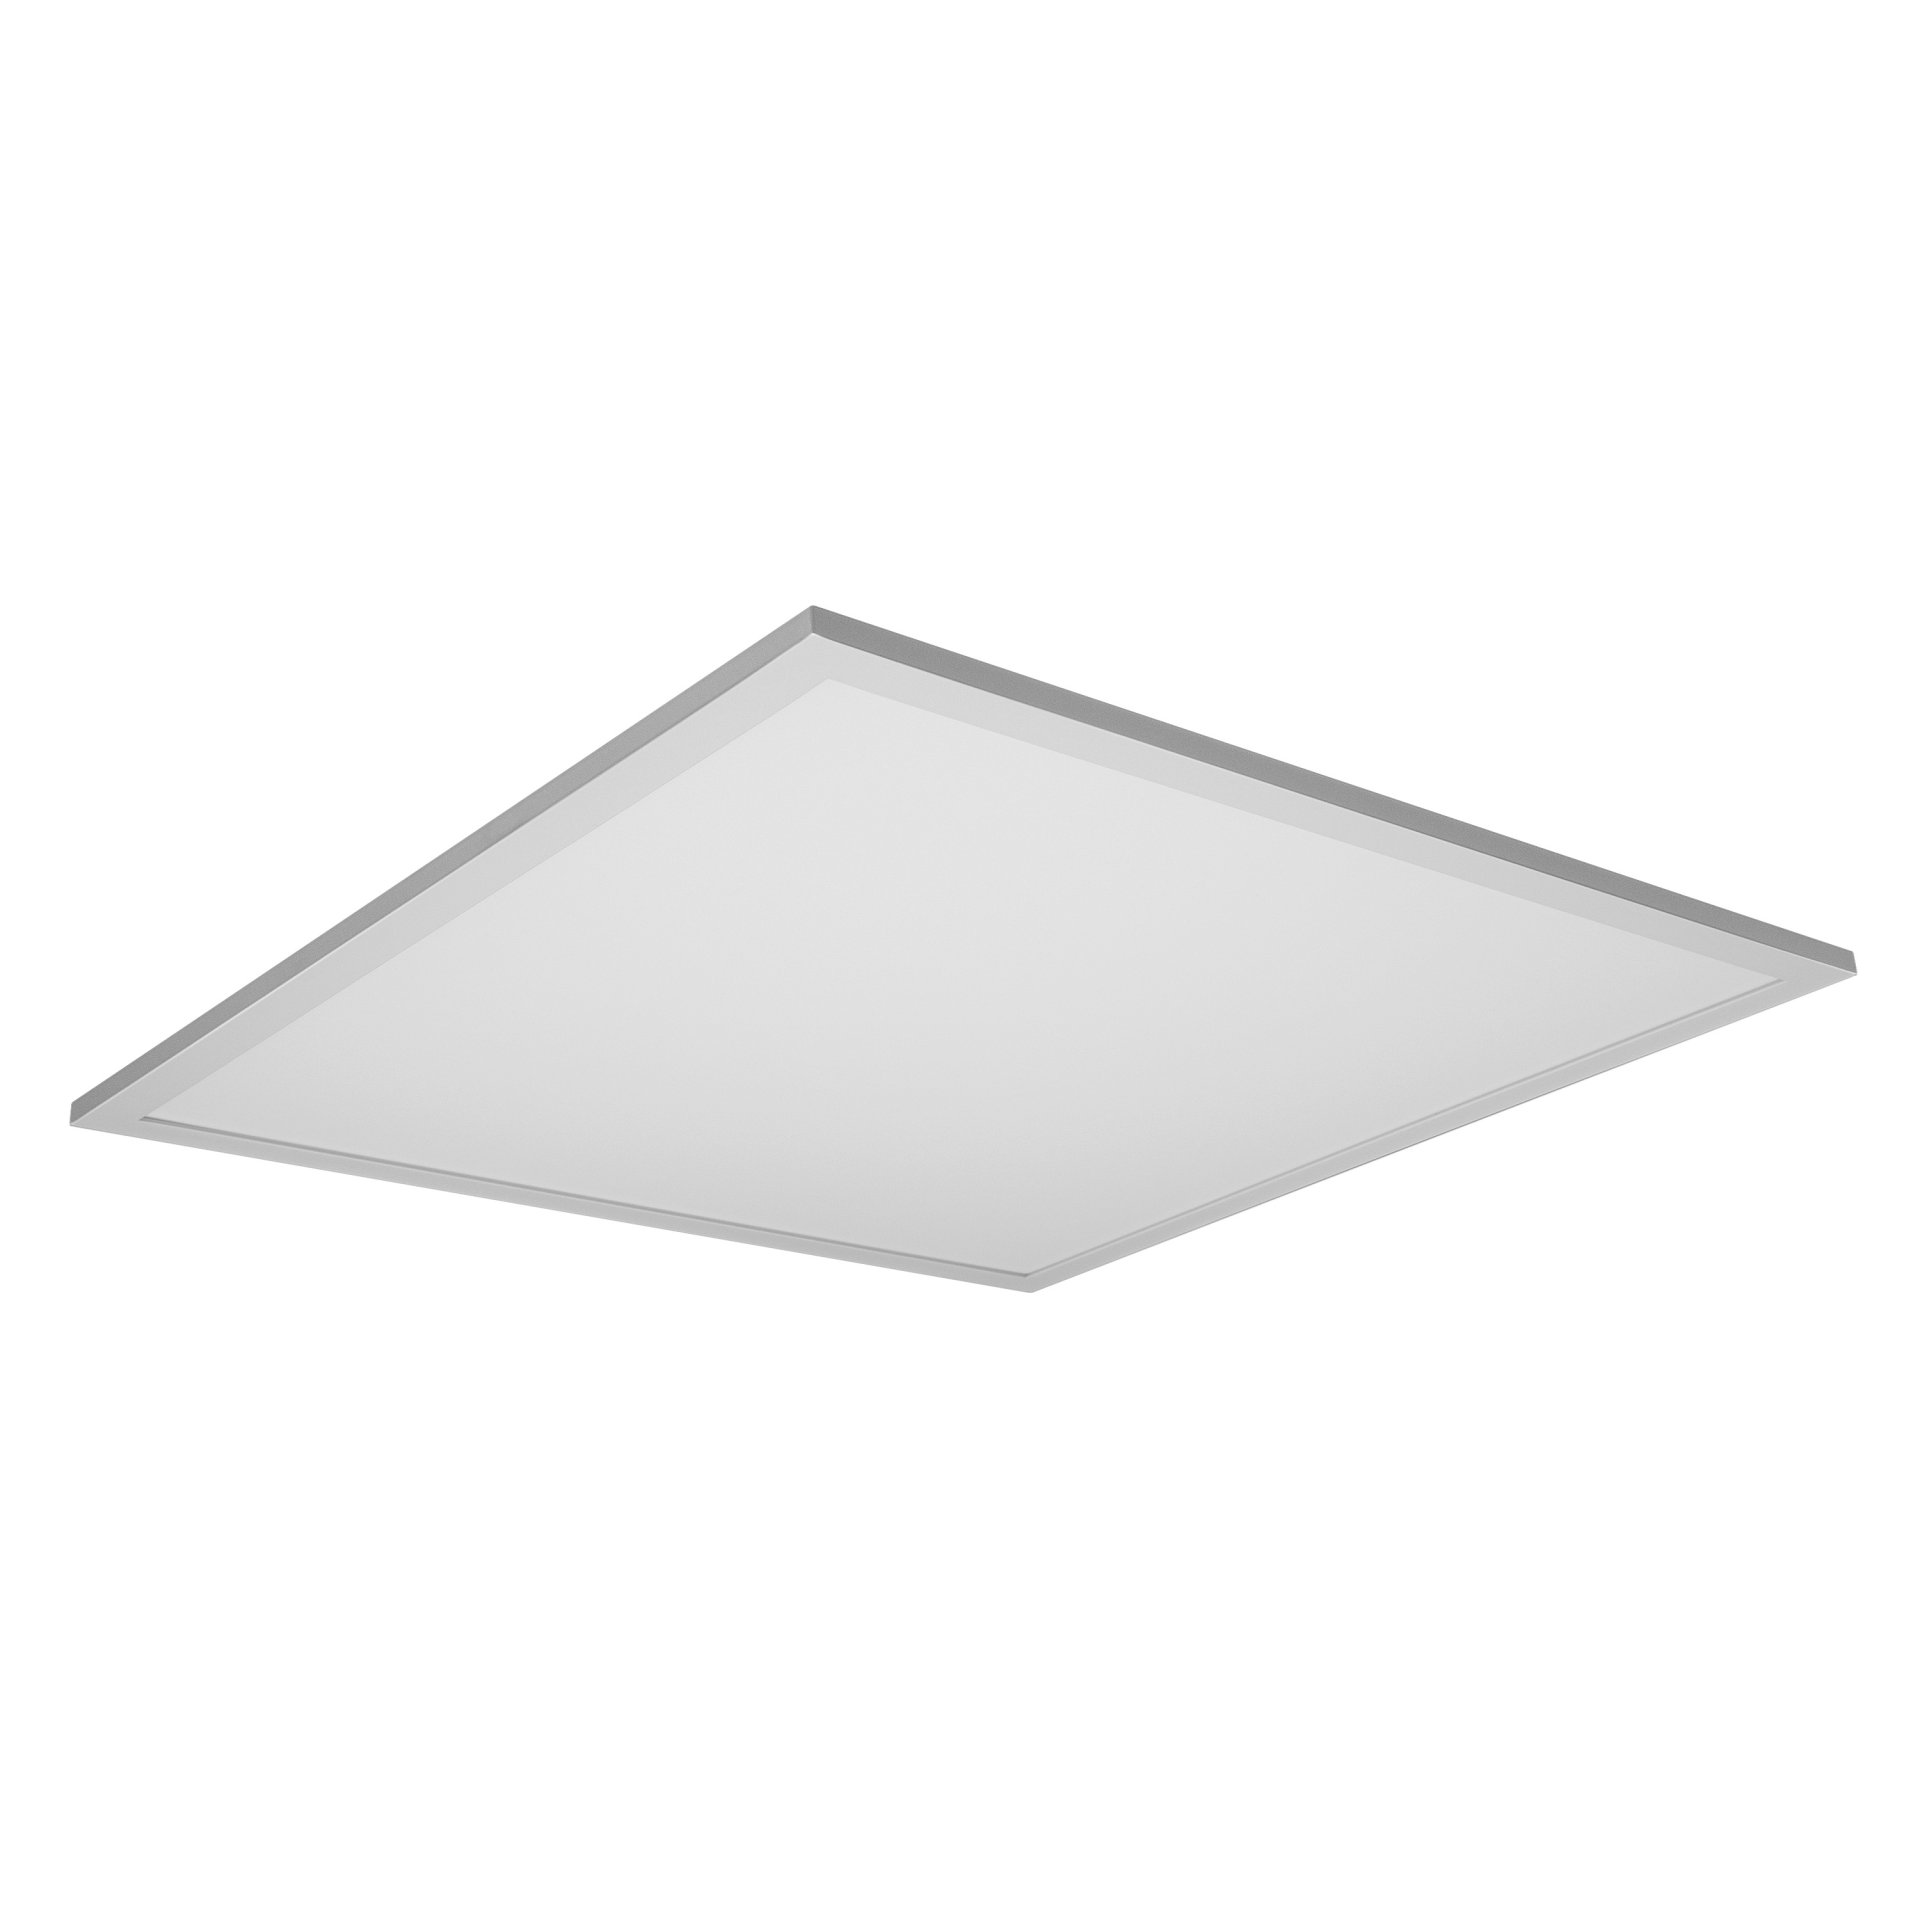 PANEL BACKLIGHT WITH WIFI TECHNOLOGY